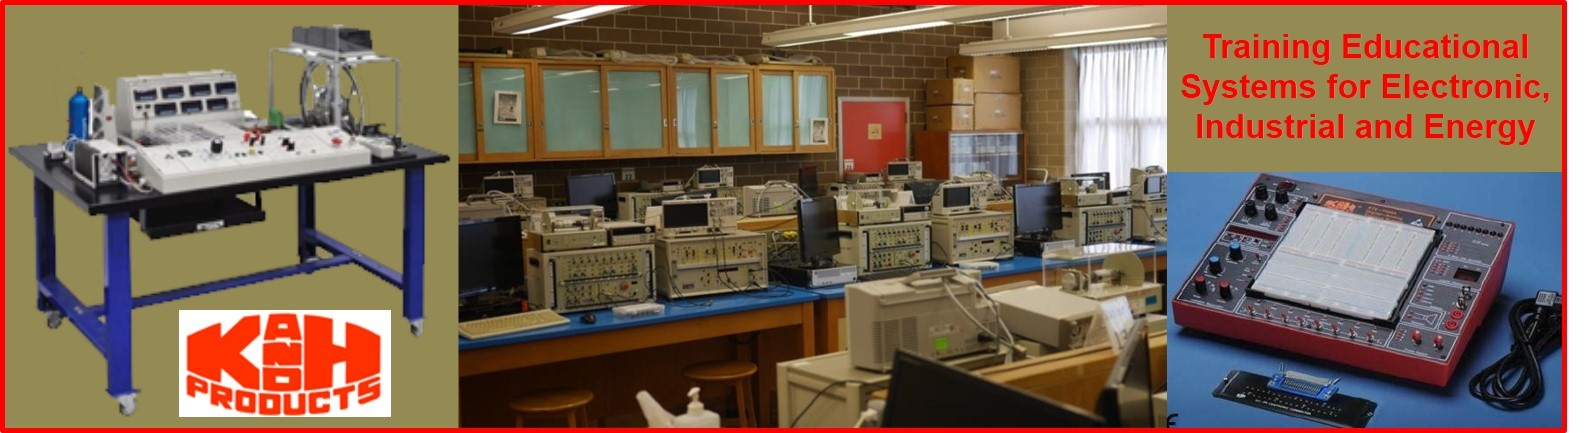 ELECTRONICS, INDUSTRIAL & ENERGY EDUCATIONAL TRAINING SYSTEMS